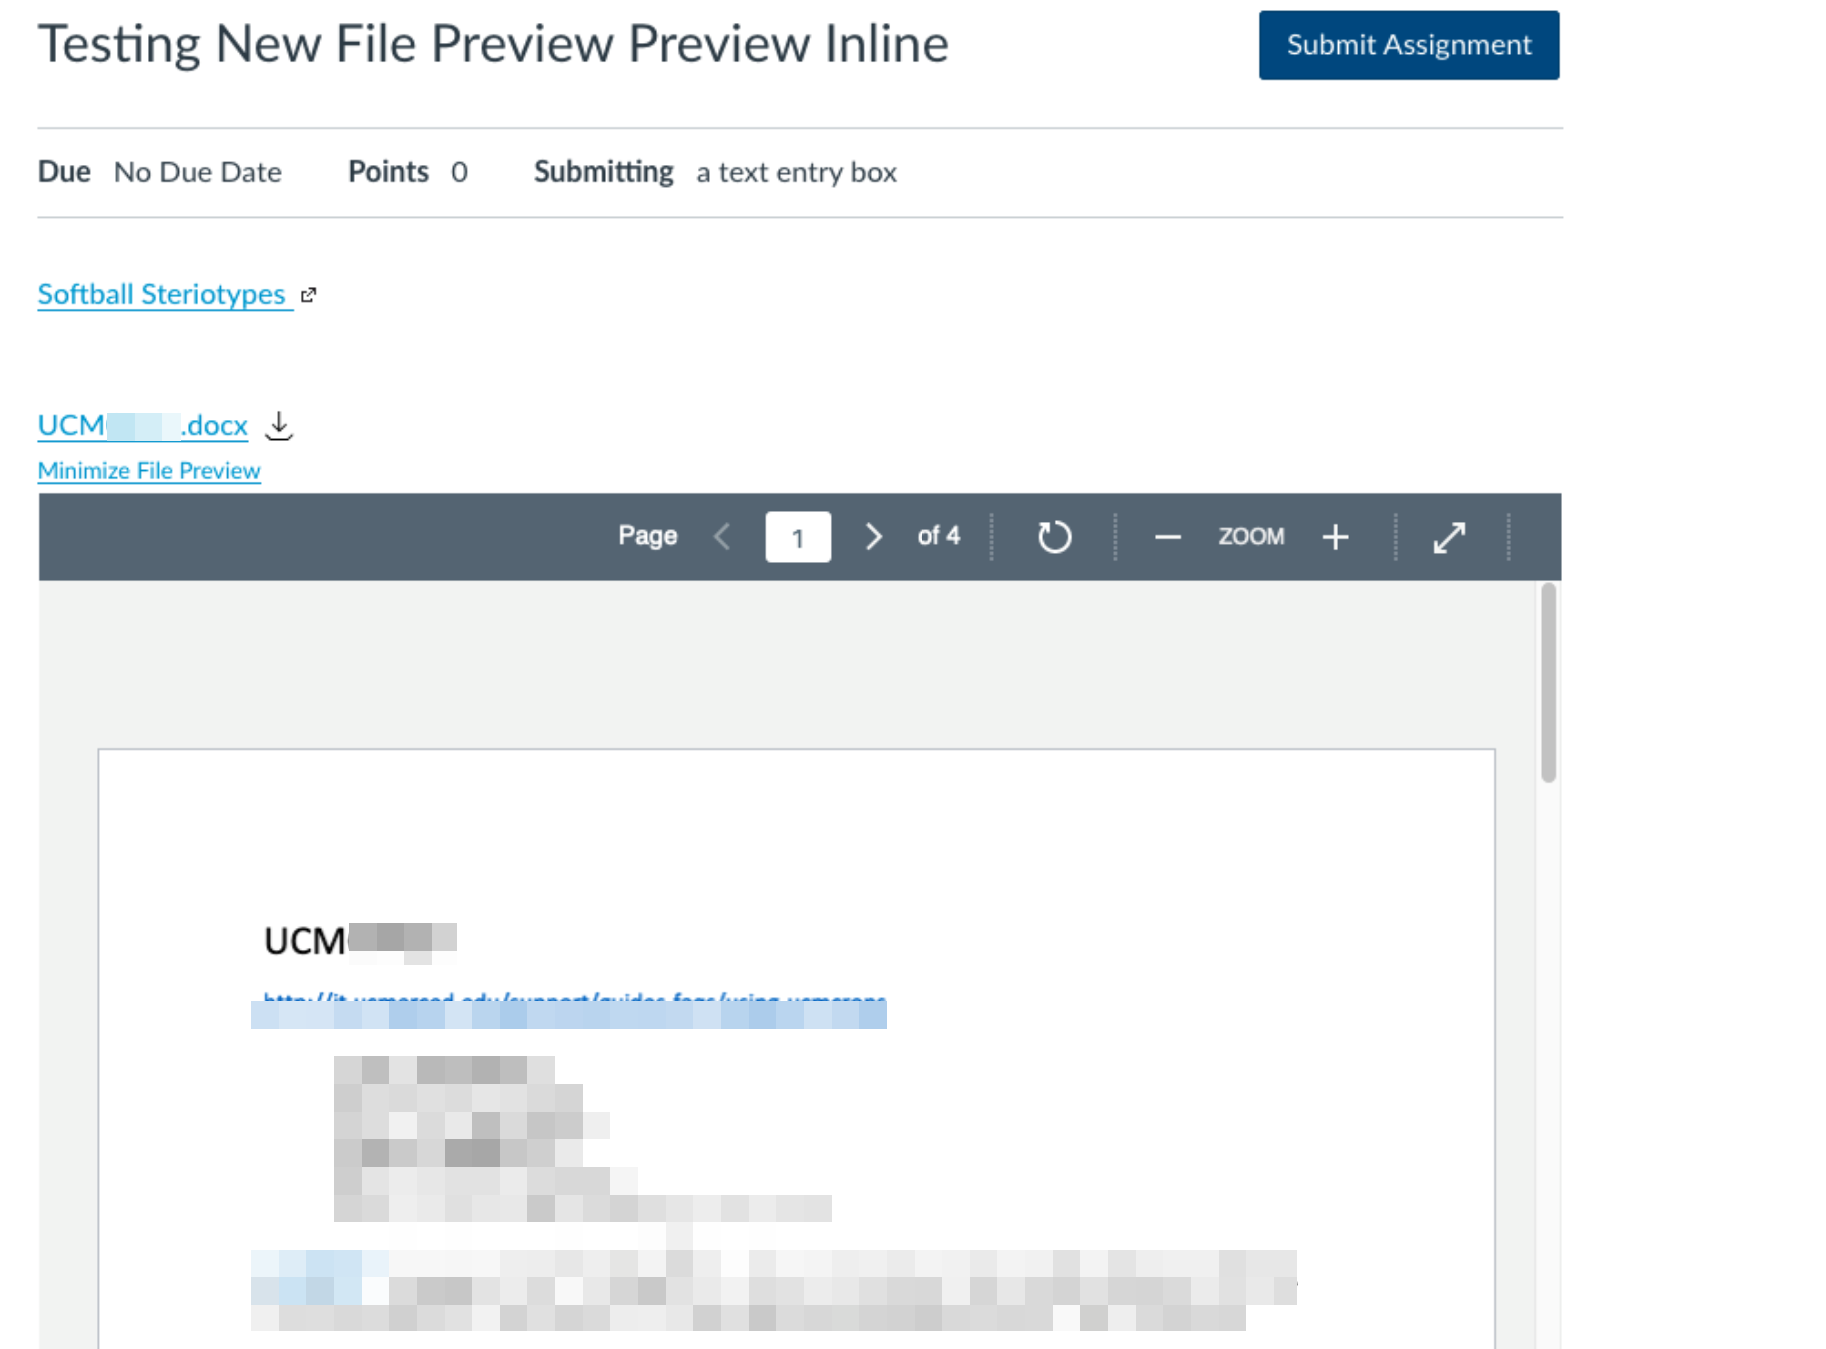 Student view of File when using Preview Inline - File opens embeded in the page